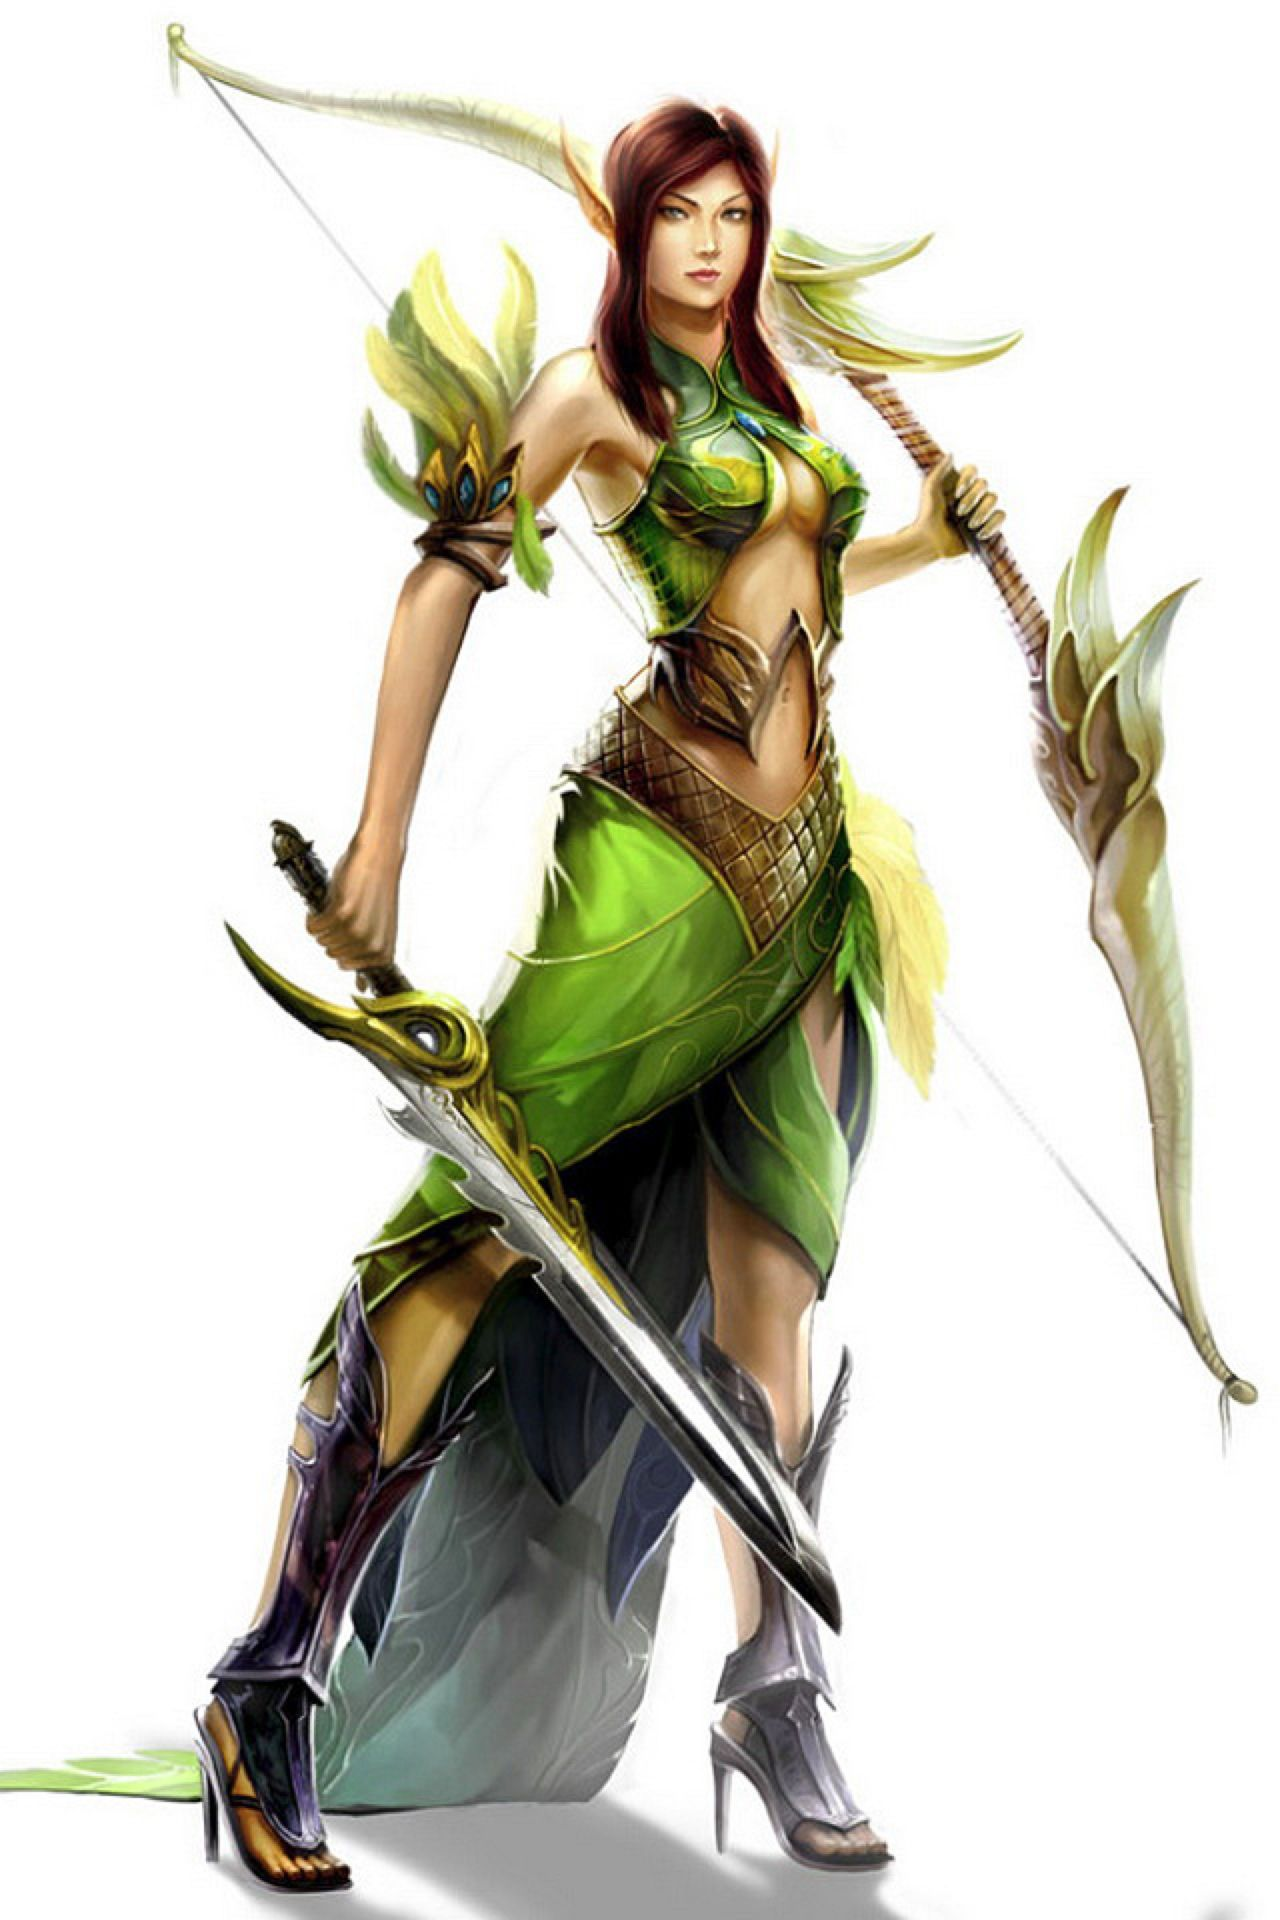 Anime elf female warrior images adult photos